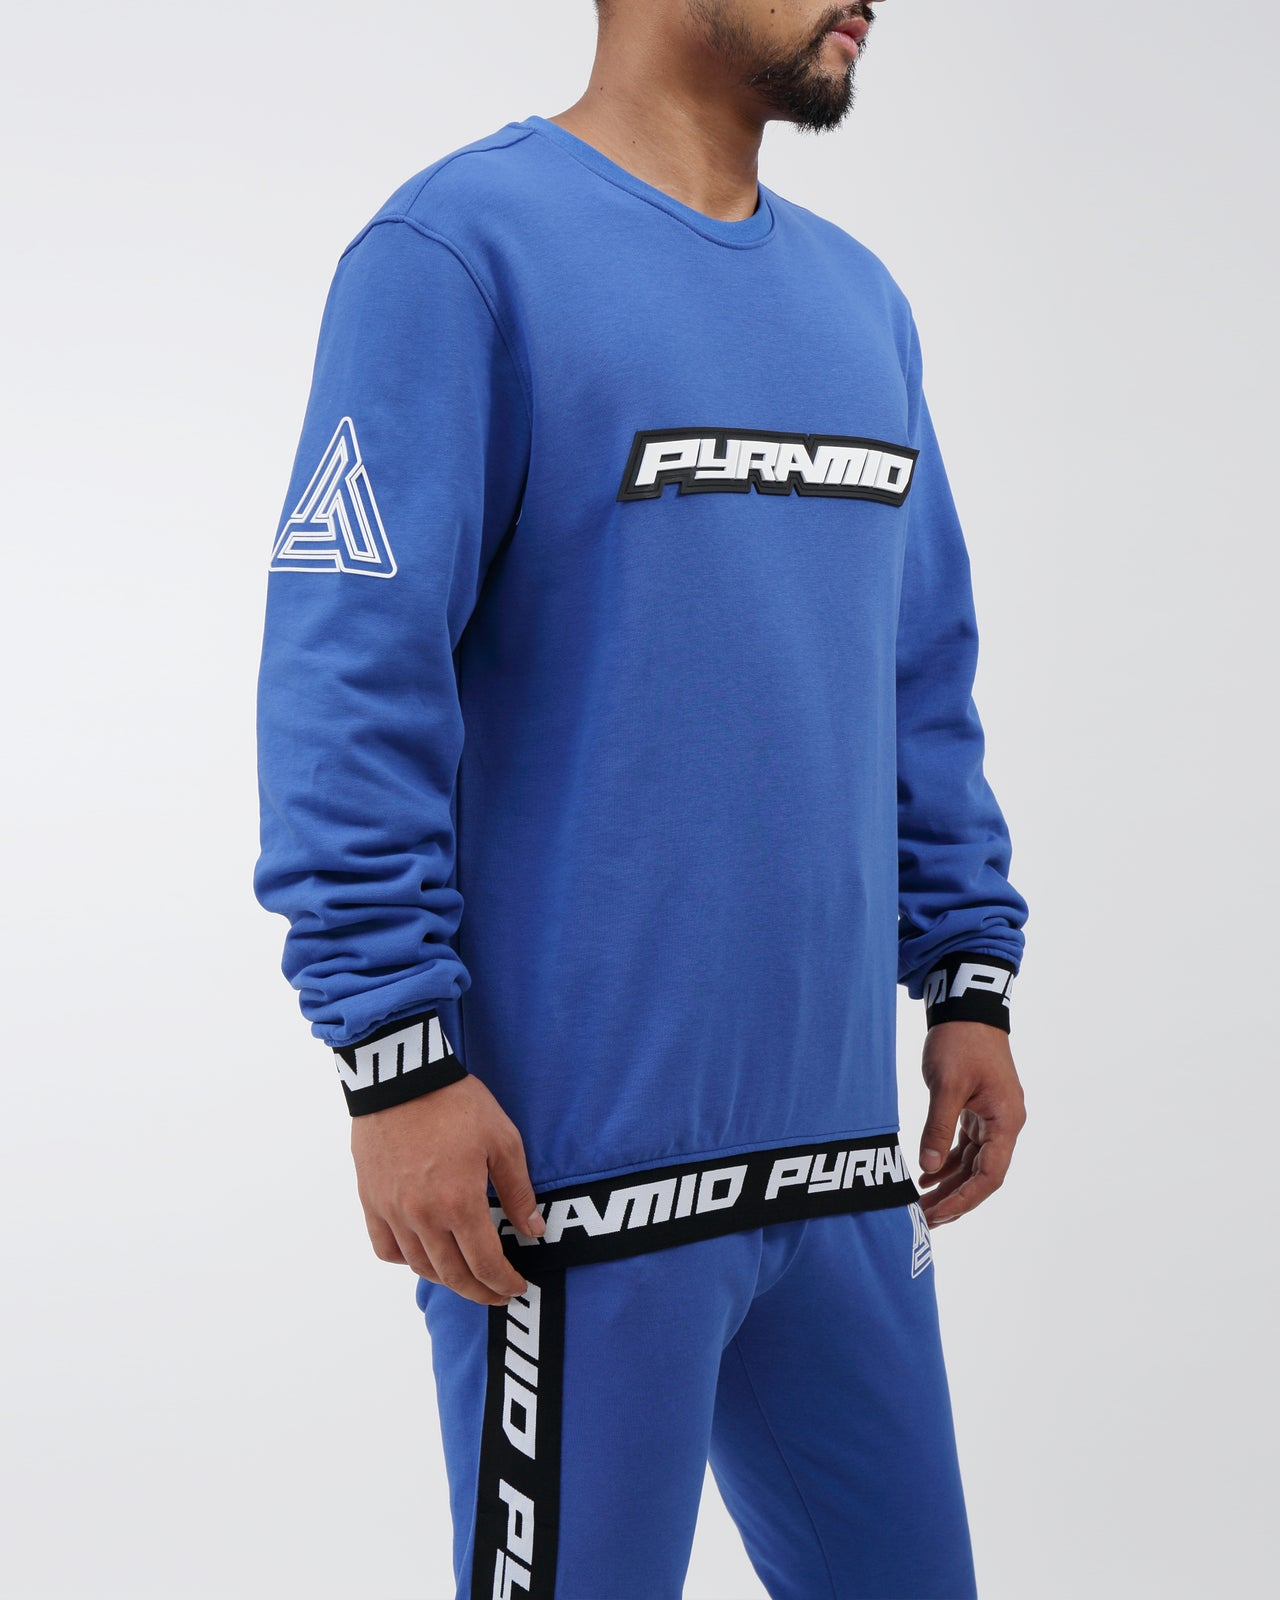 Pyramid Sweatshirt - Color: Blue